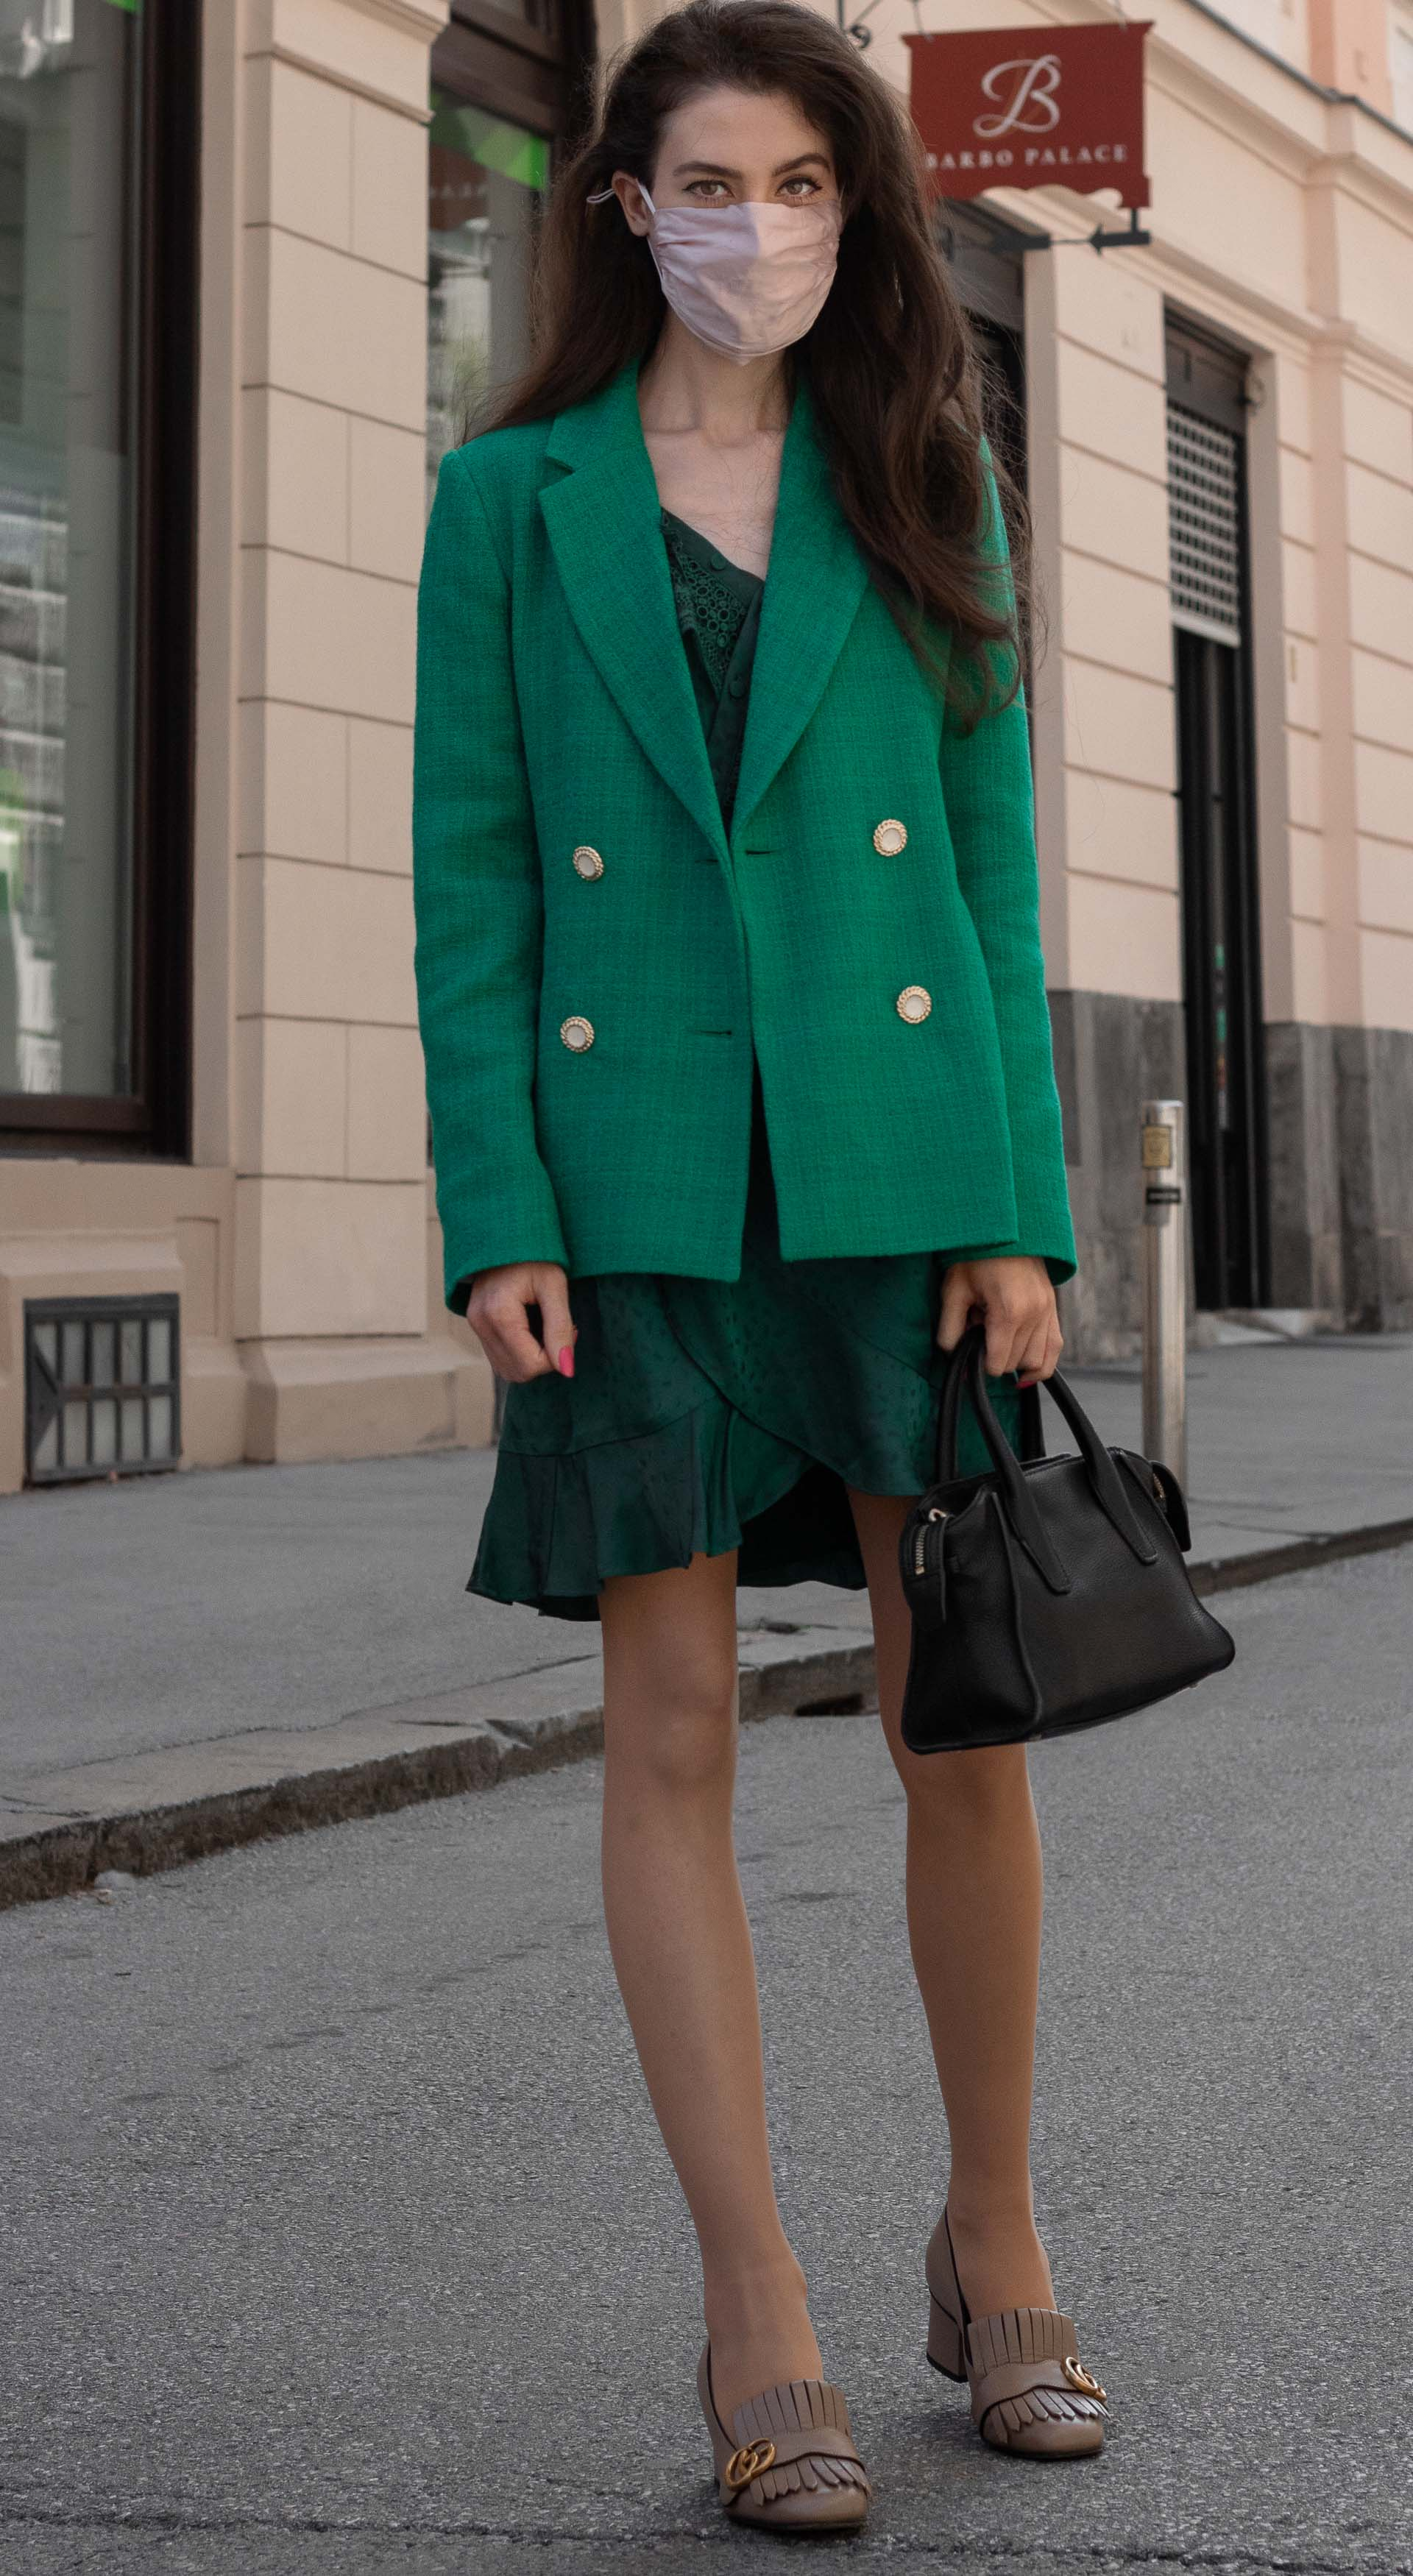 Fashion blogger Veronika Lipar of Brunette from Wall Street wearing Sandro Paris double breasted green blazer self-portrait wrap dress Gucci heeled loafers black bag face mask for office in fall